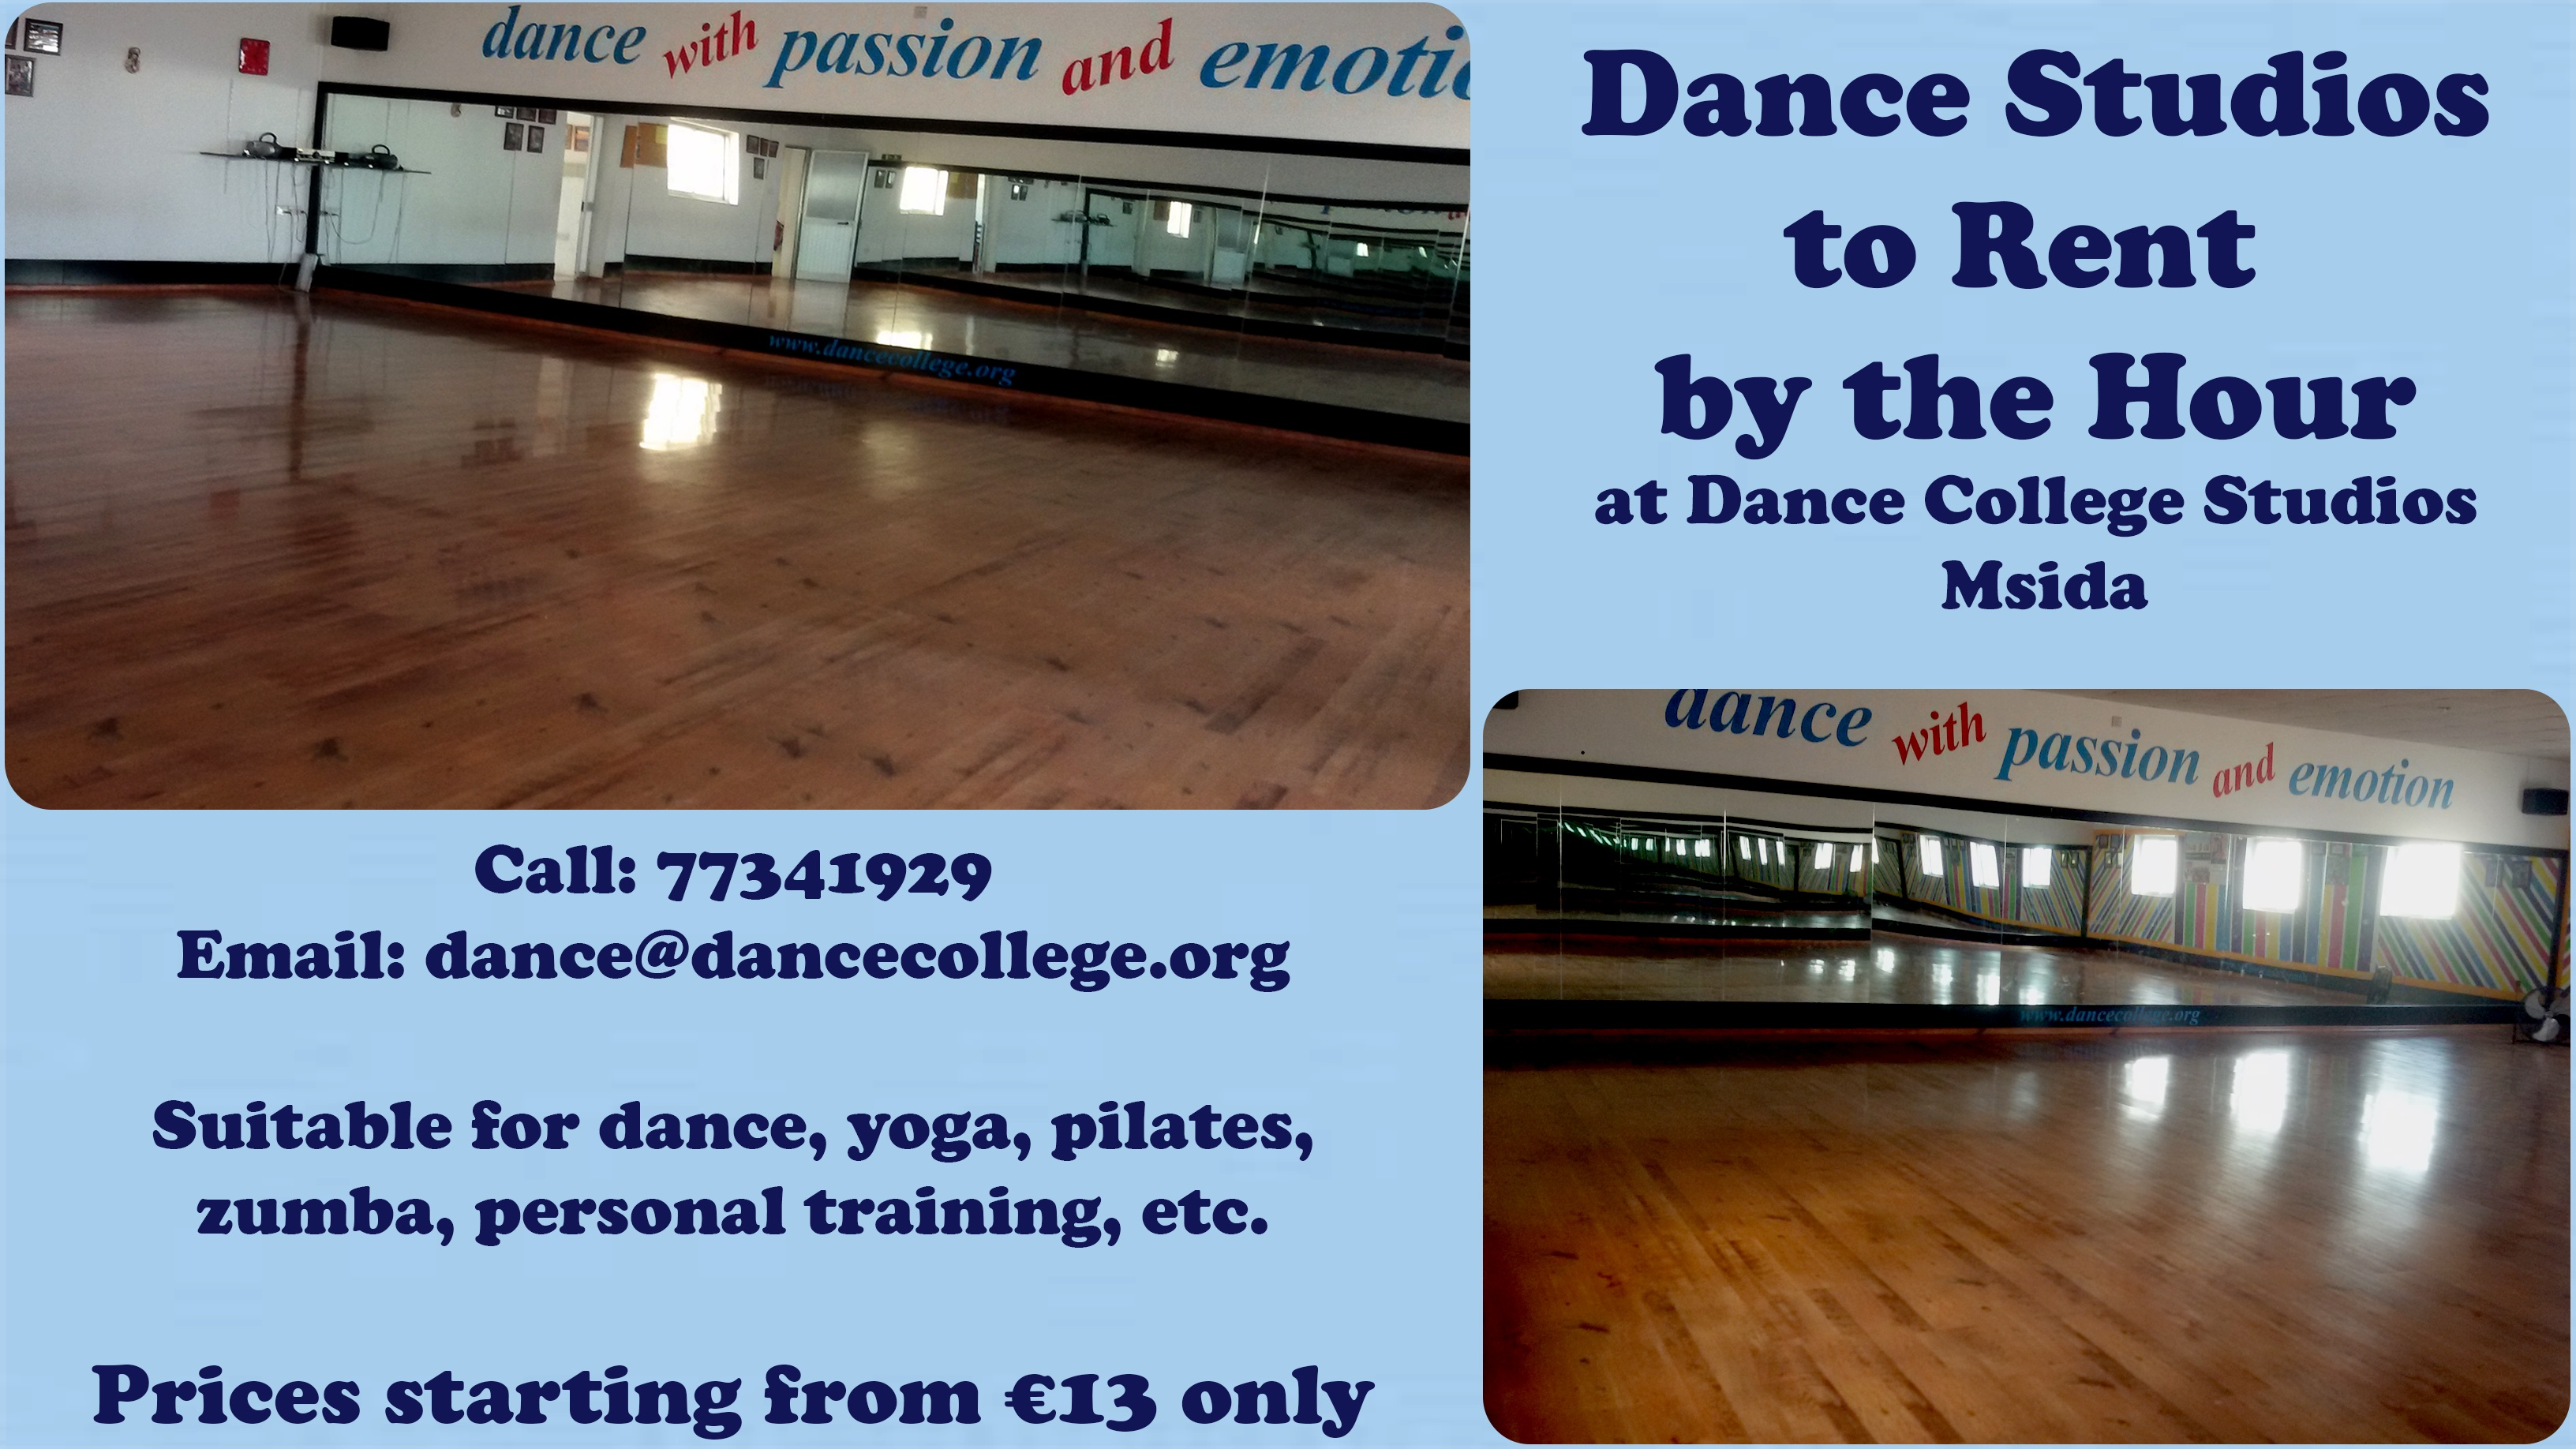 Dance College studio rent advert